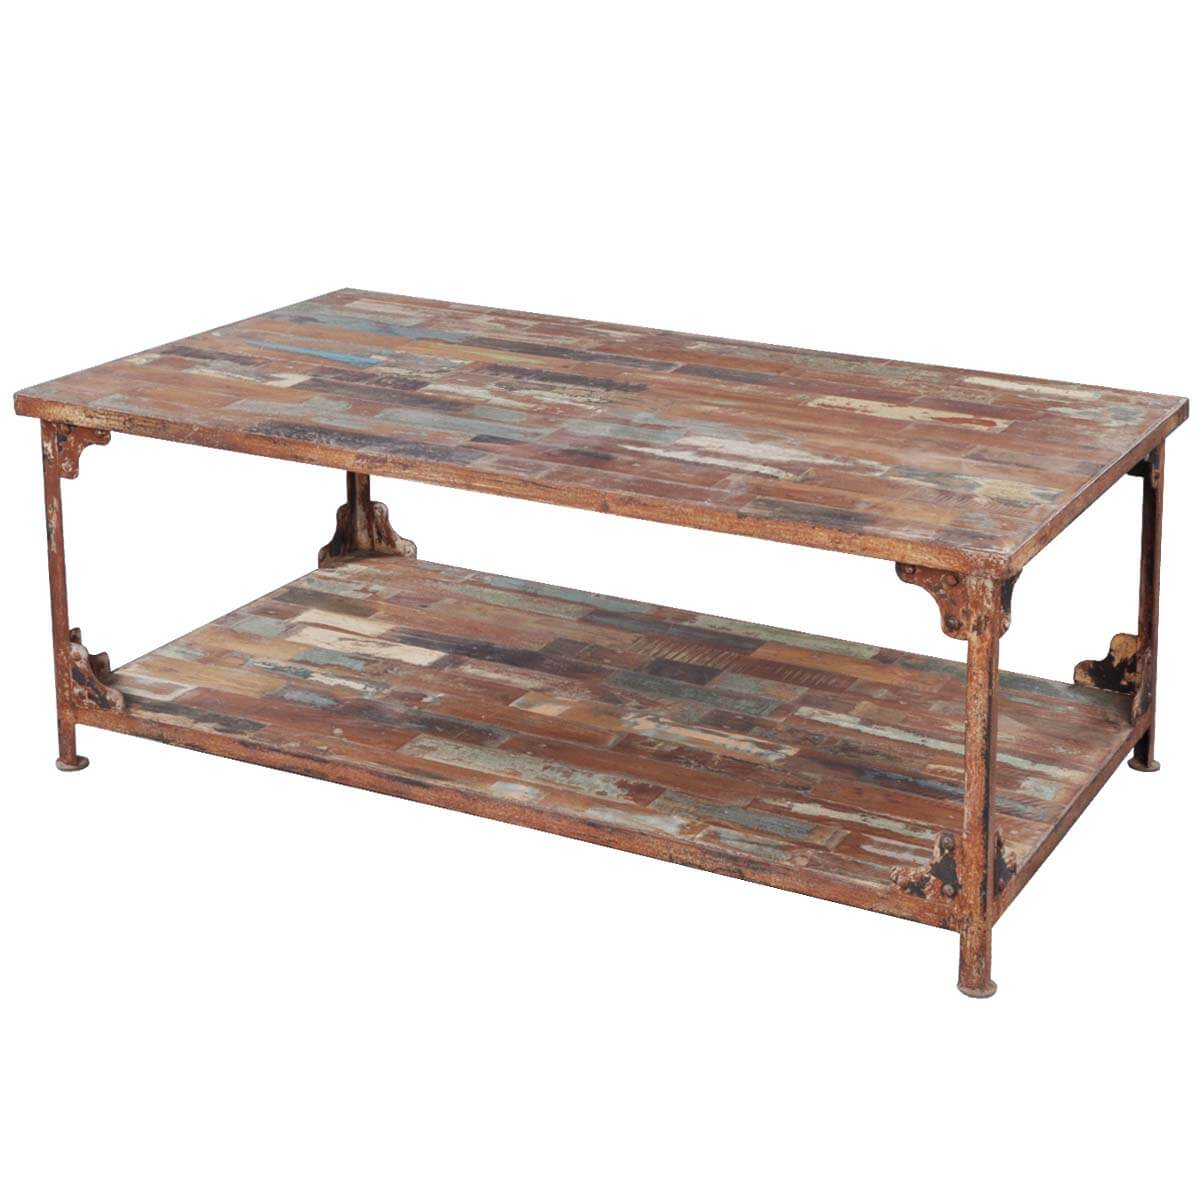 Distressed reclaimed wood industrial wrought iron rustic coffee table Rustic wooden coffee tables